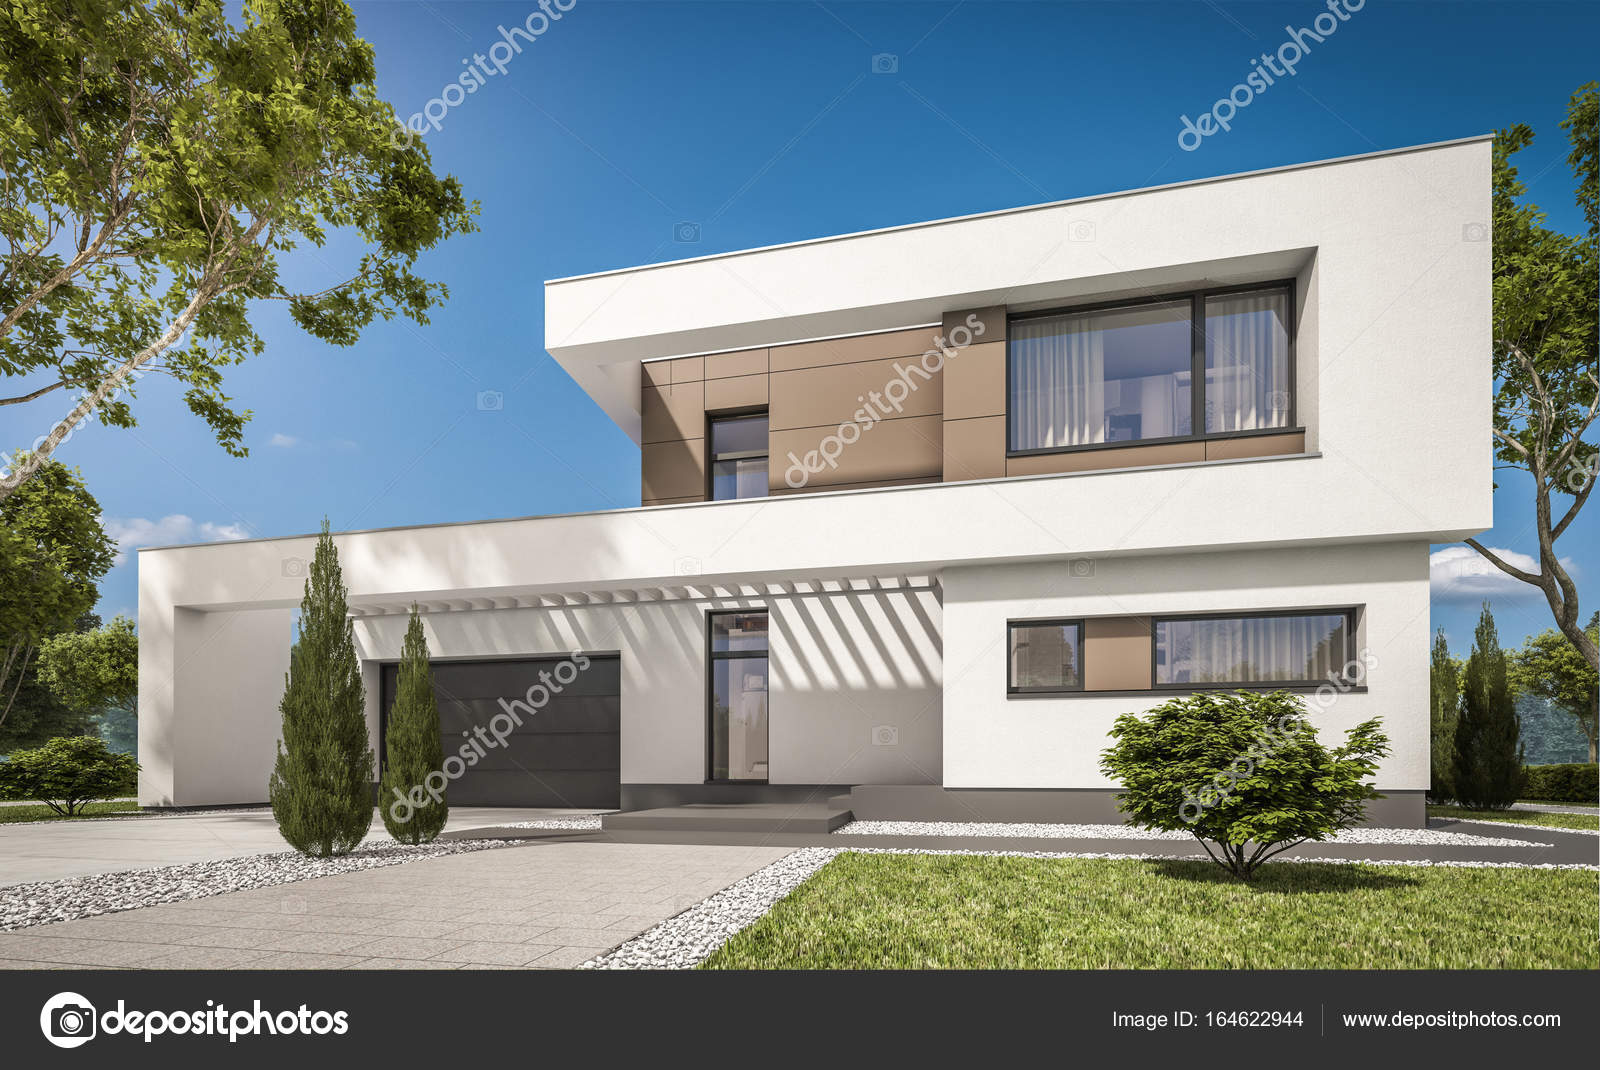 Render 3d de casa moderna fotos de stock korisbo gmail for Rendering case moderne